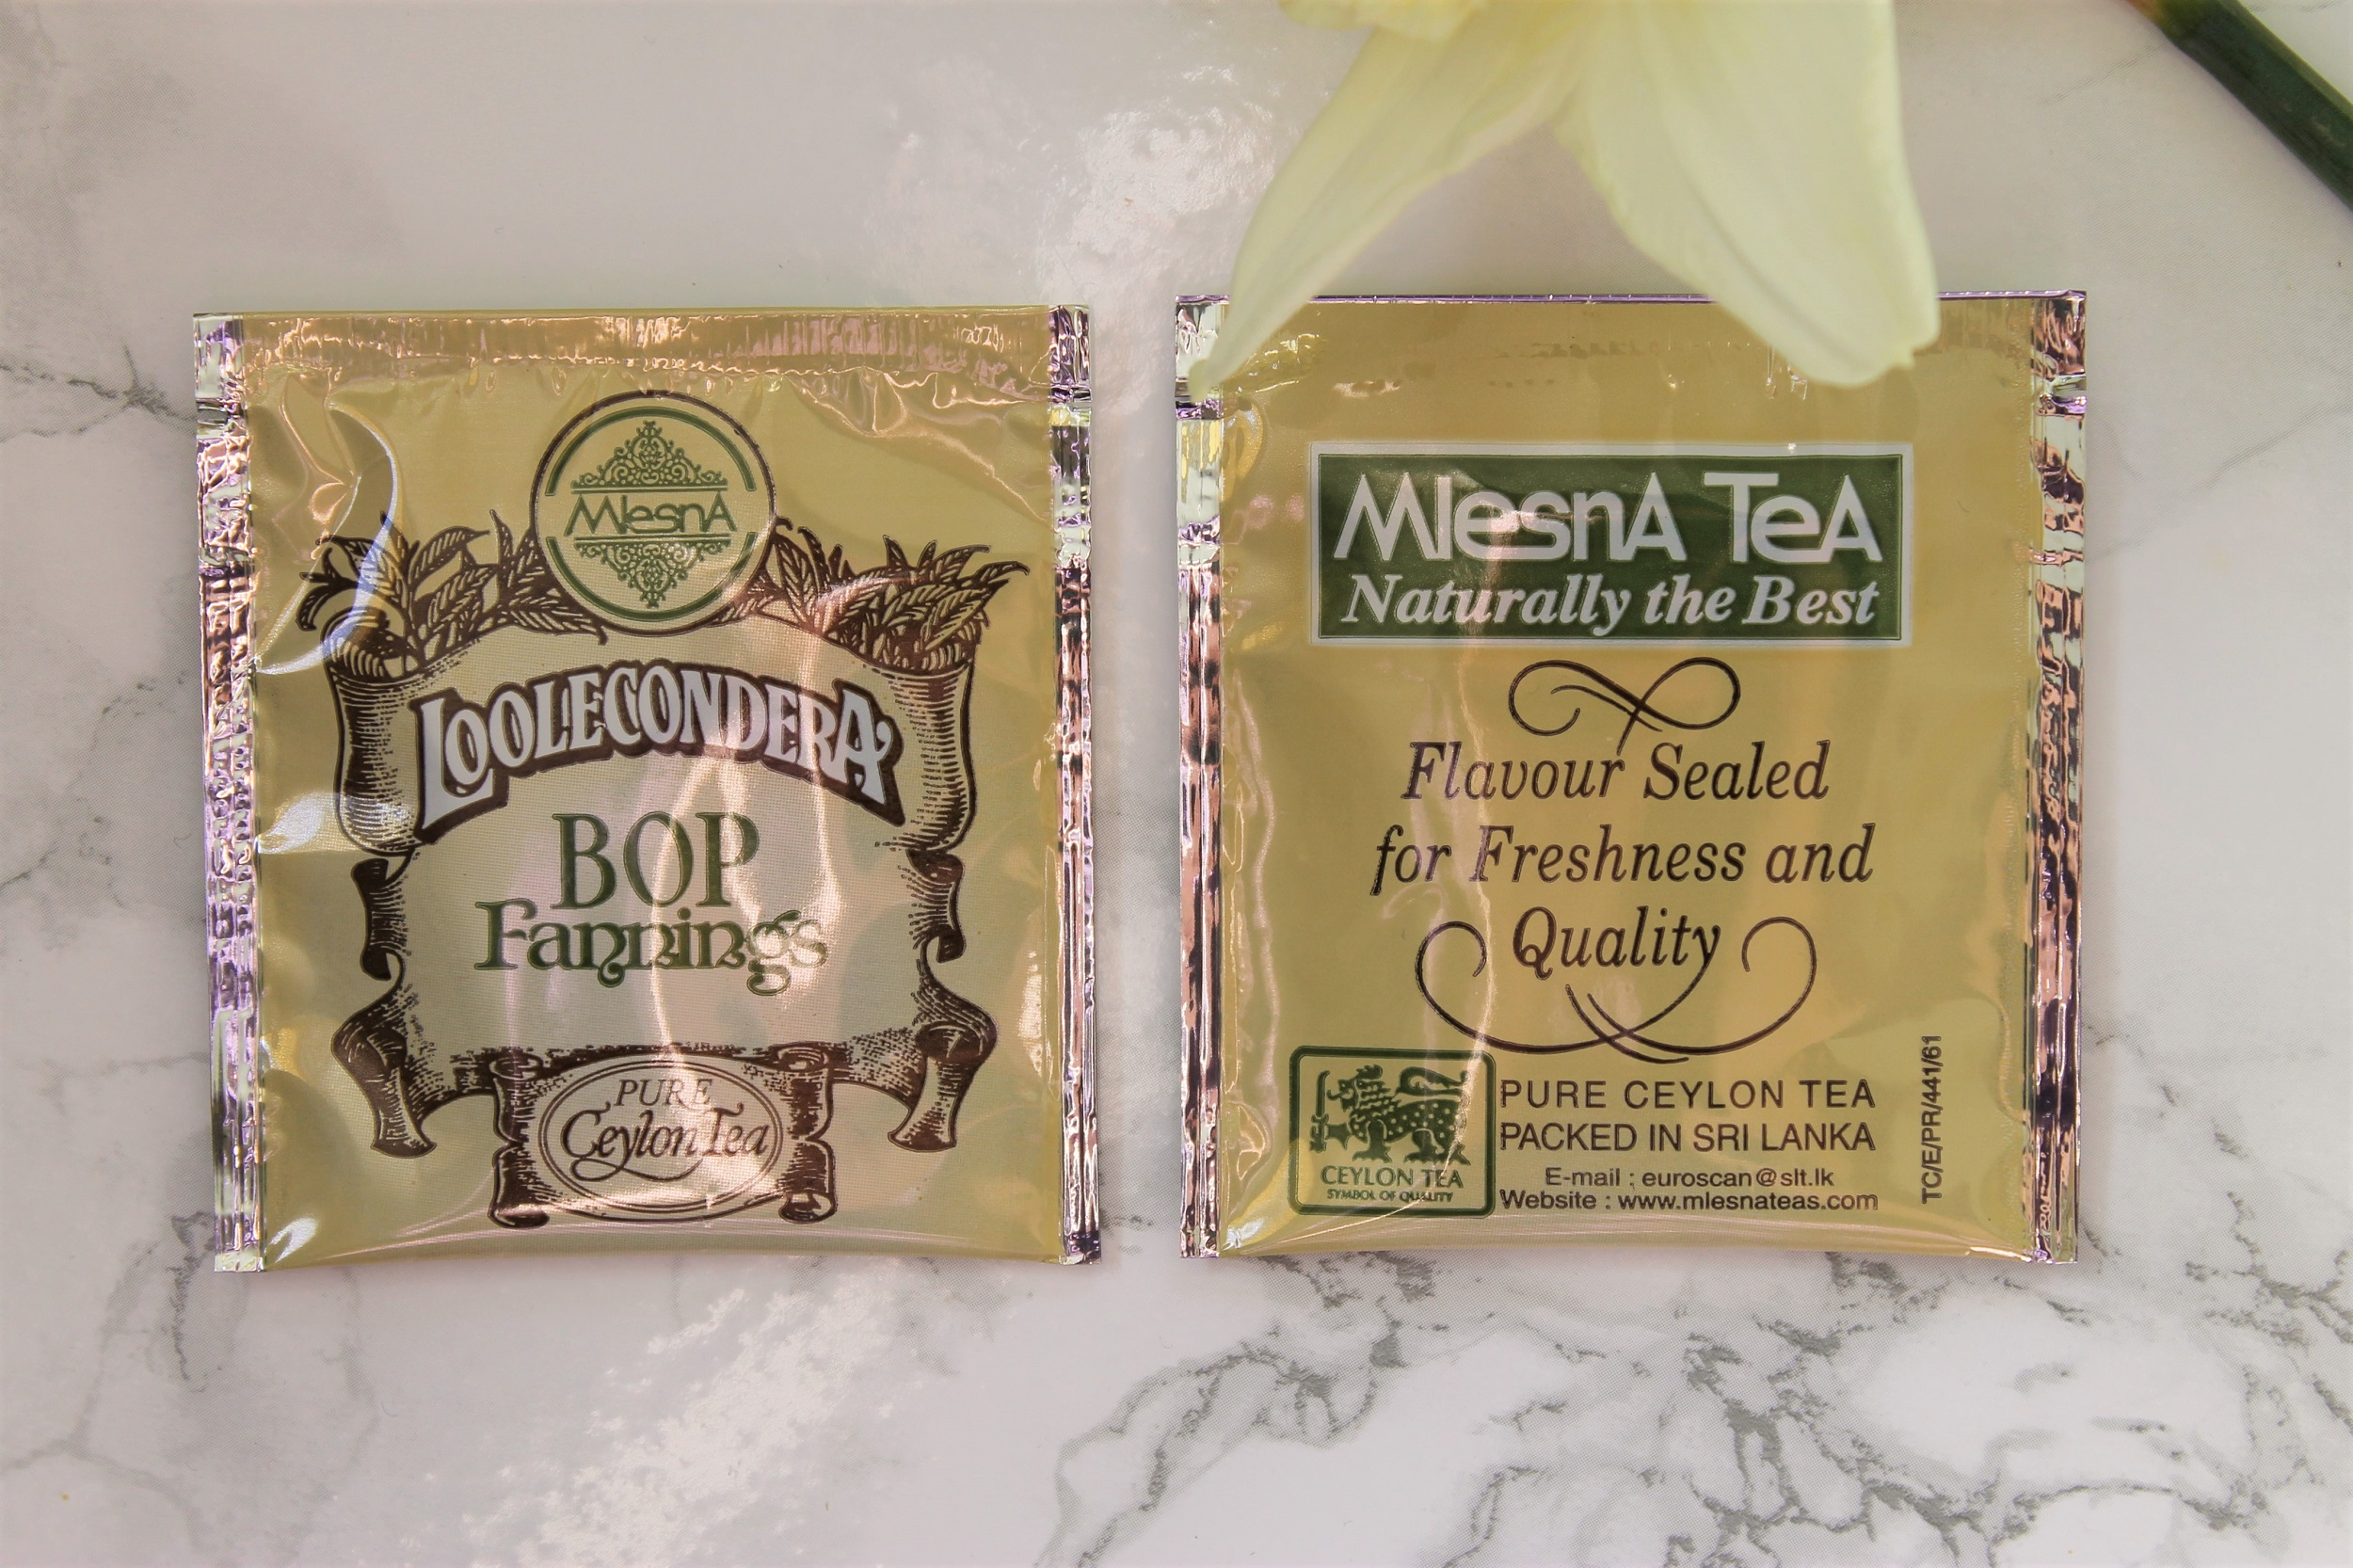 mlesna foil wrapped loolecondera teabags